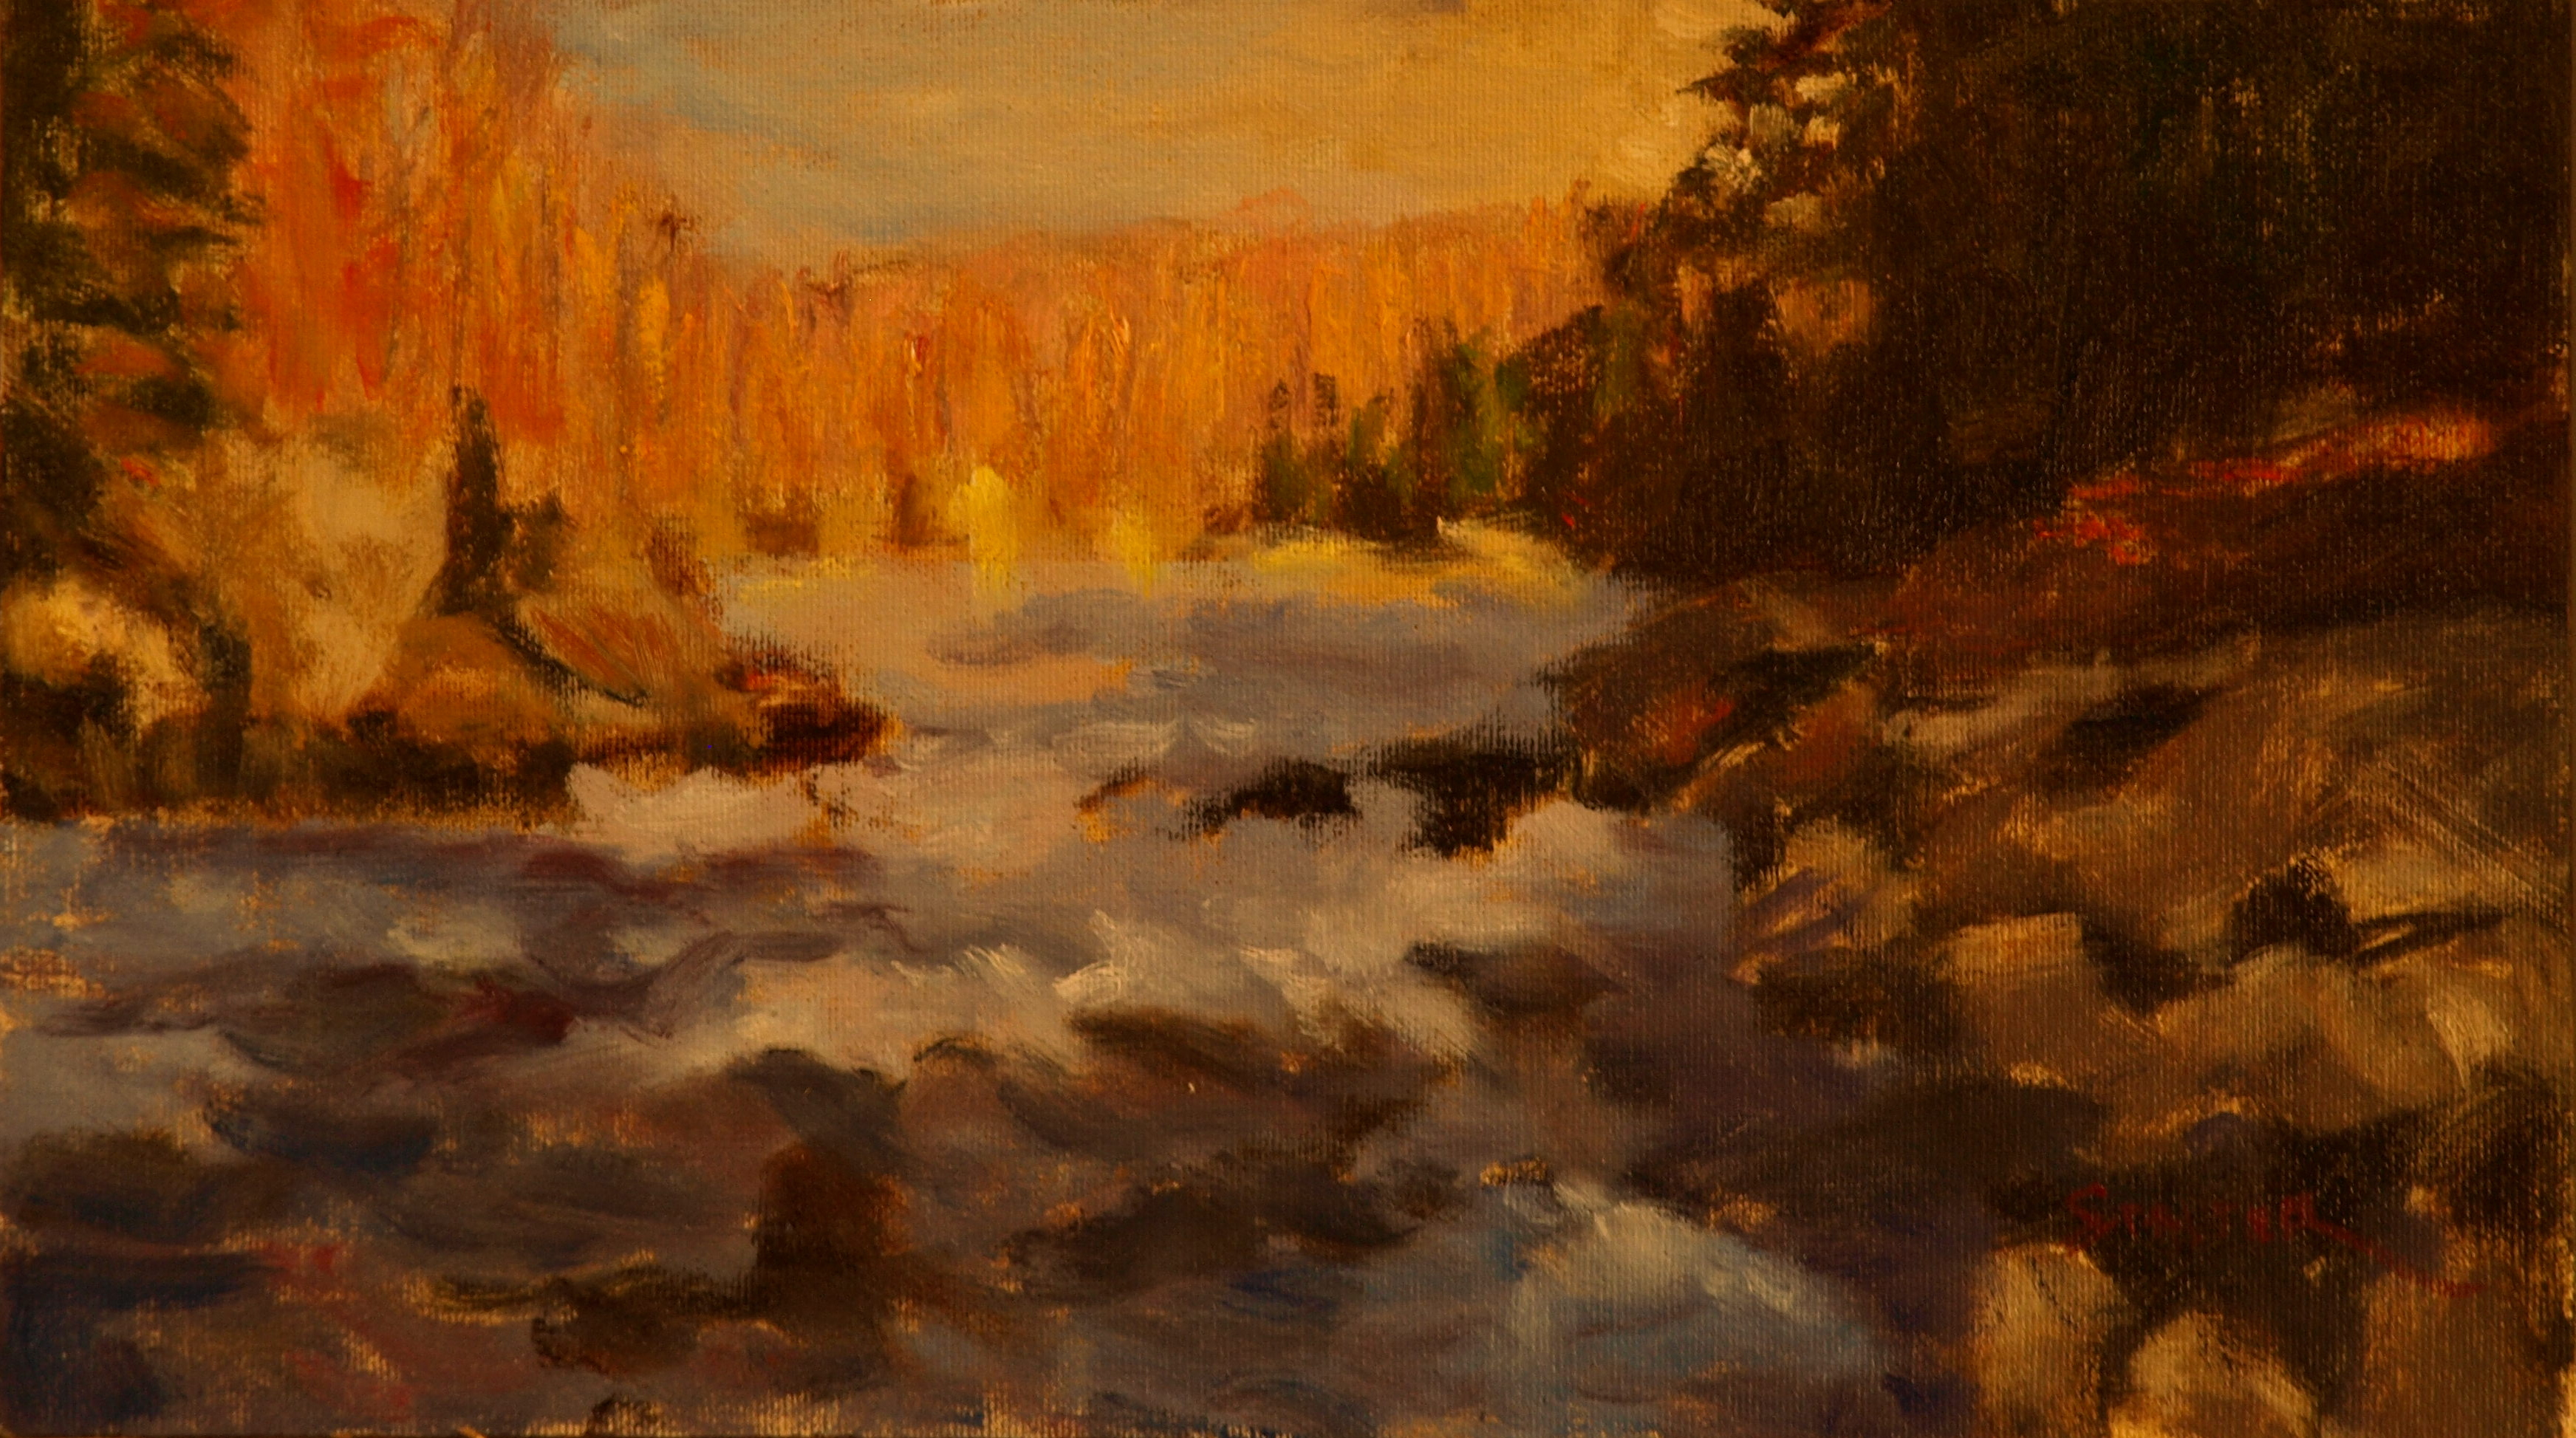 Housatonic Rapids, Oil on Canvas on Panel, 8 x 14 Inches, by Richard Stalter, $225